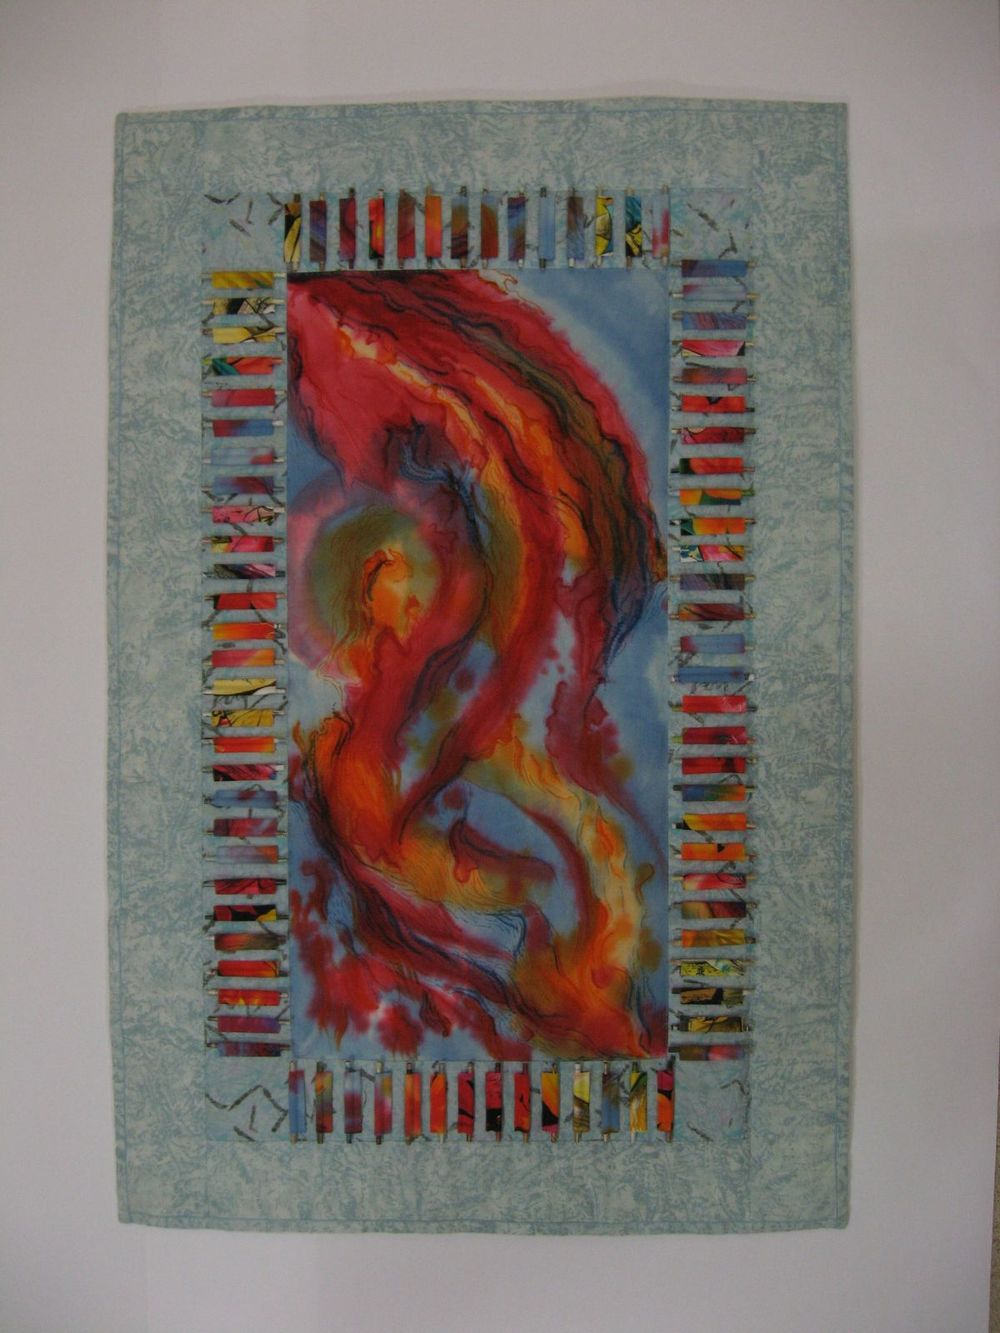 'One Spirit, Many Gifts', mixed media, including hand-dyed cloth and found papers